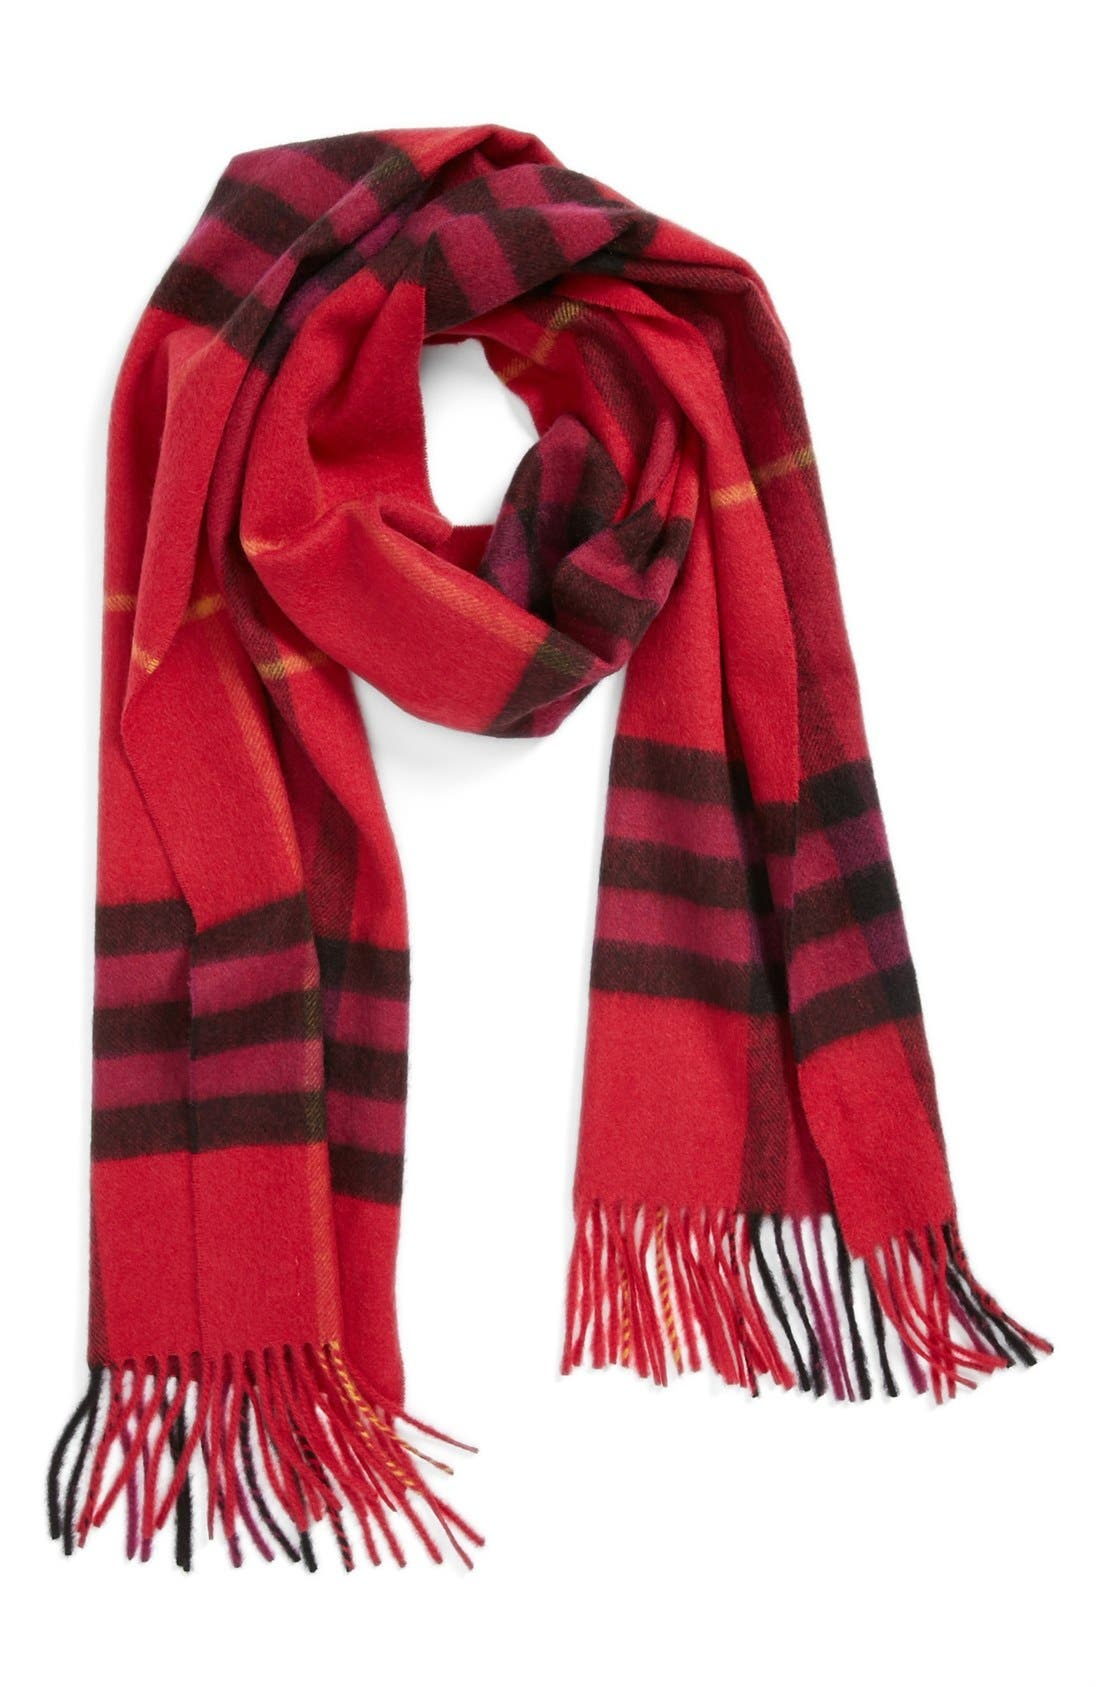 Alternate Image 1 Selected - Burberry Giant Check Fringed Cashmere Muffler